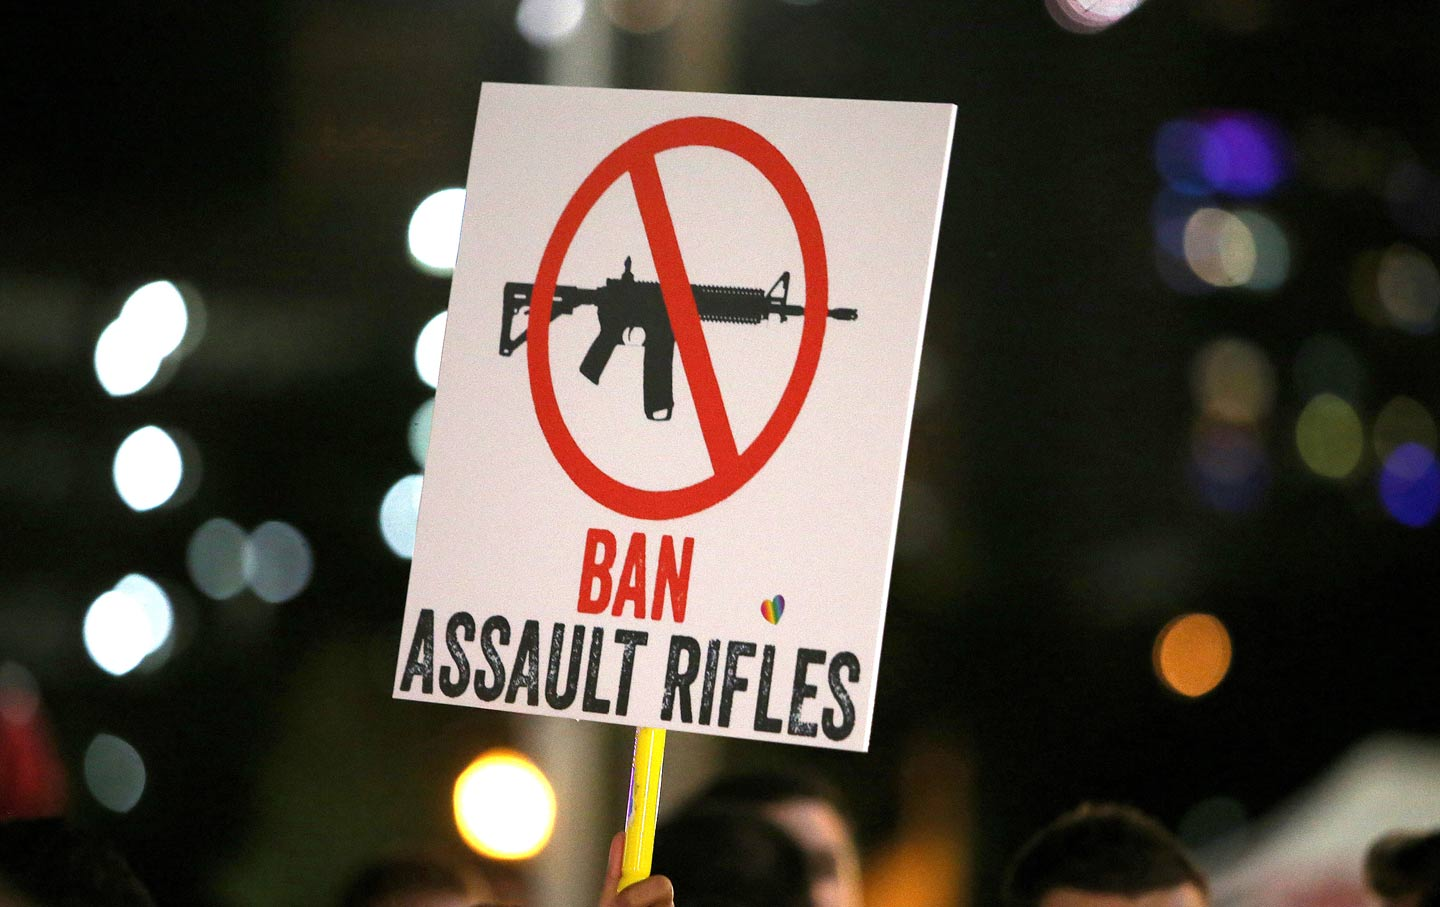 A sign calling to ban assault rifles